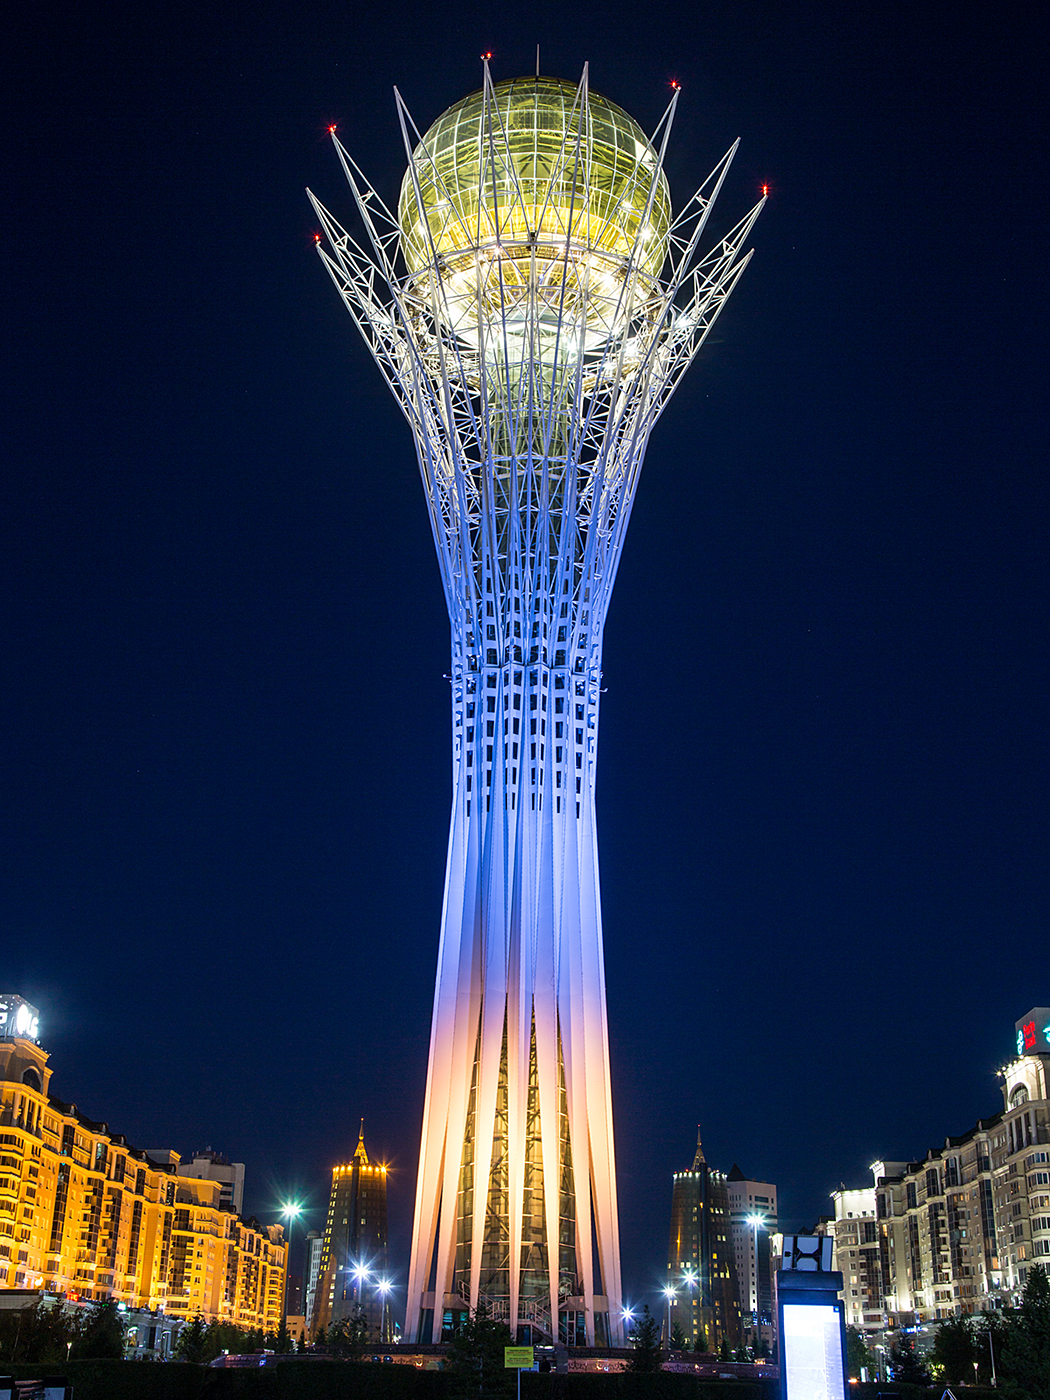 Baiterektower by night